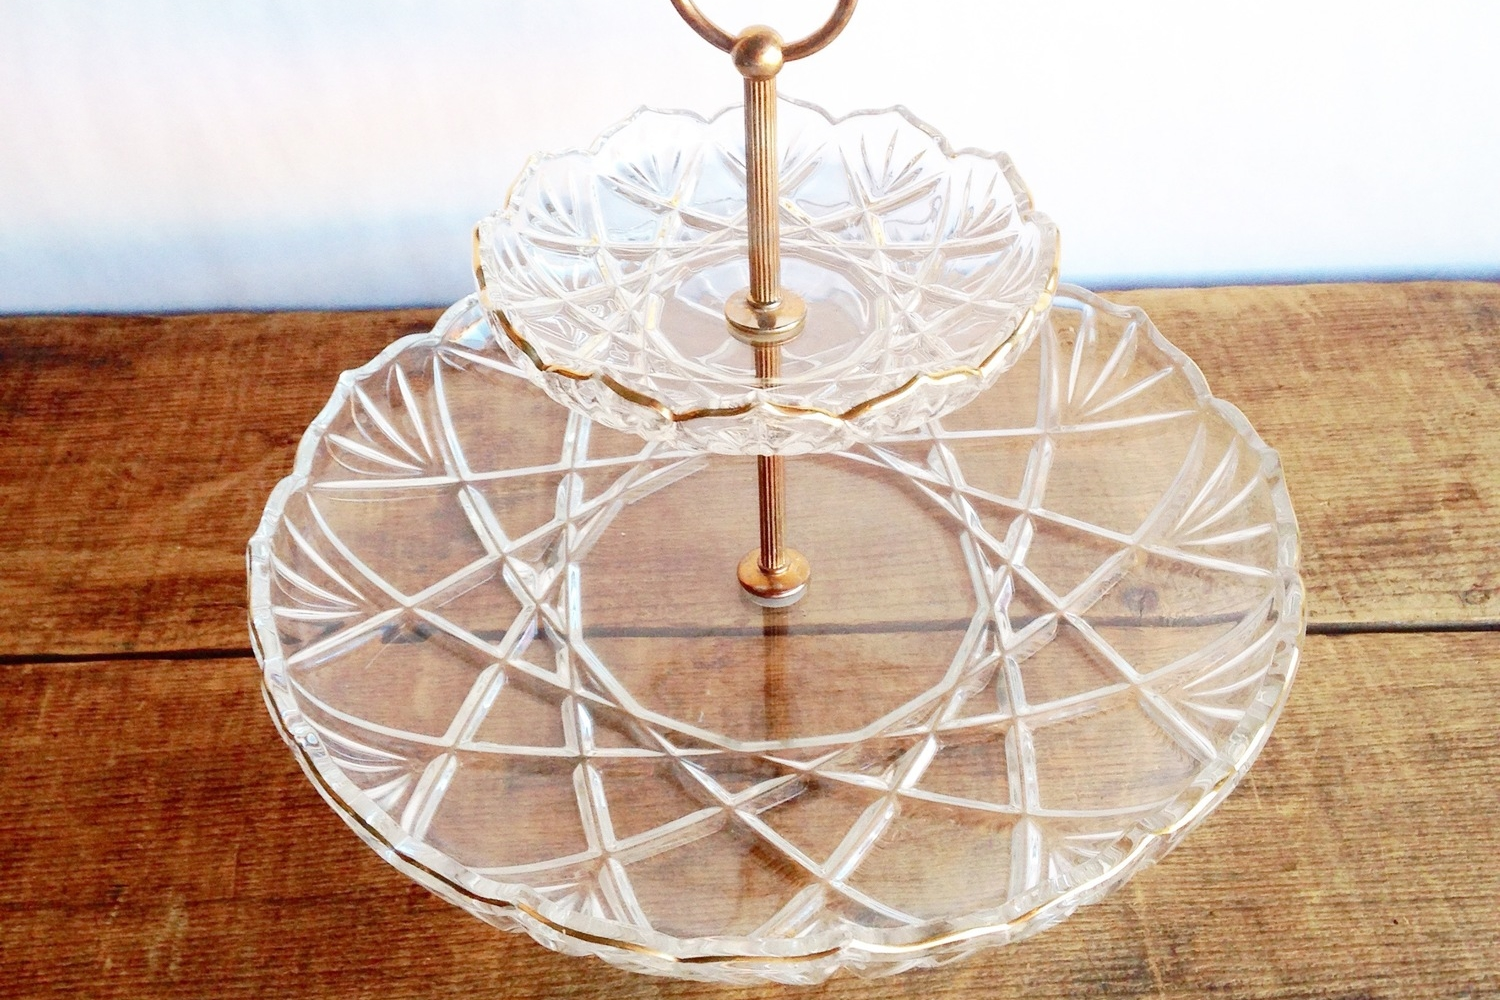 Etched Glass Tiered Serving Tray